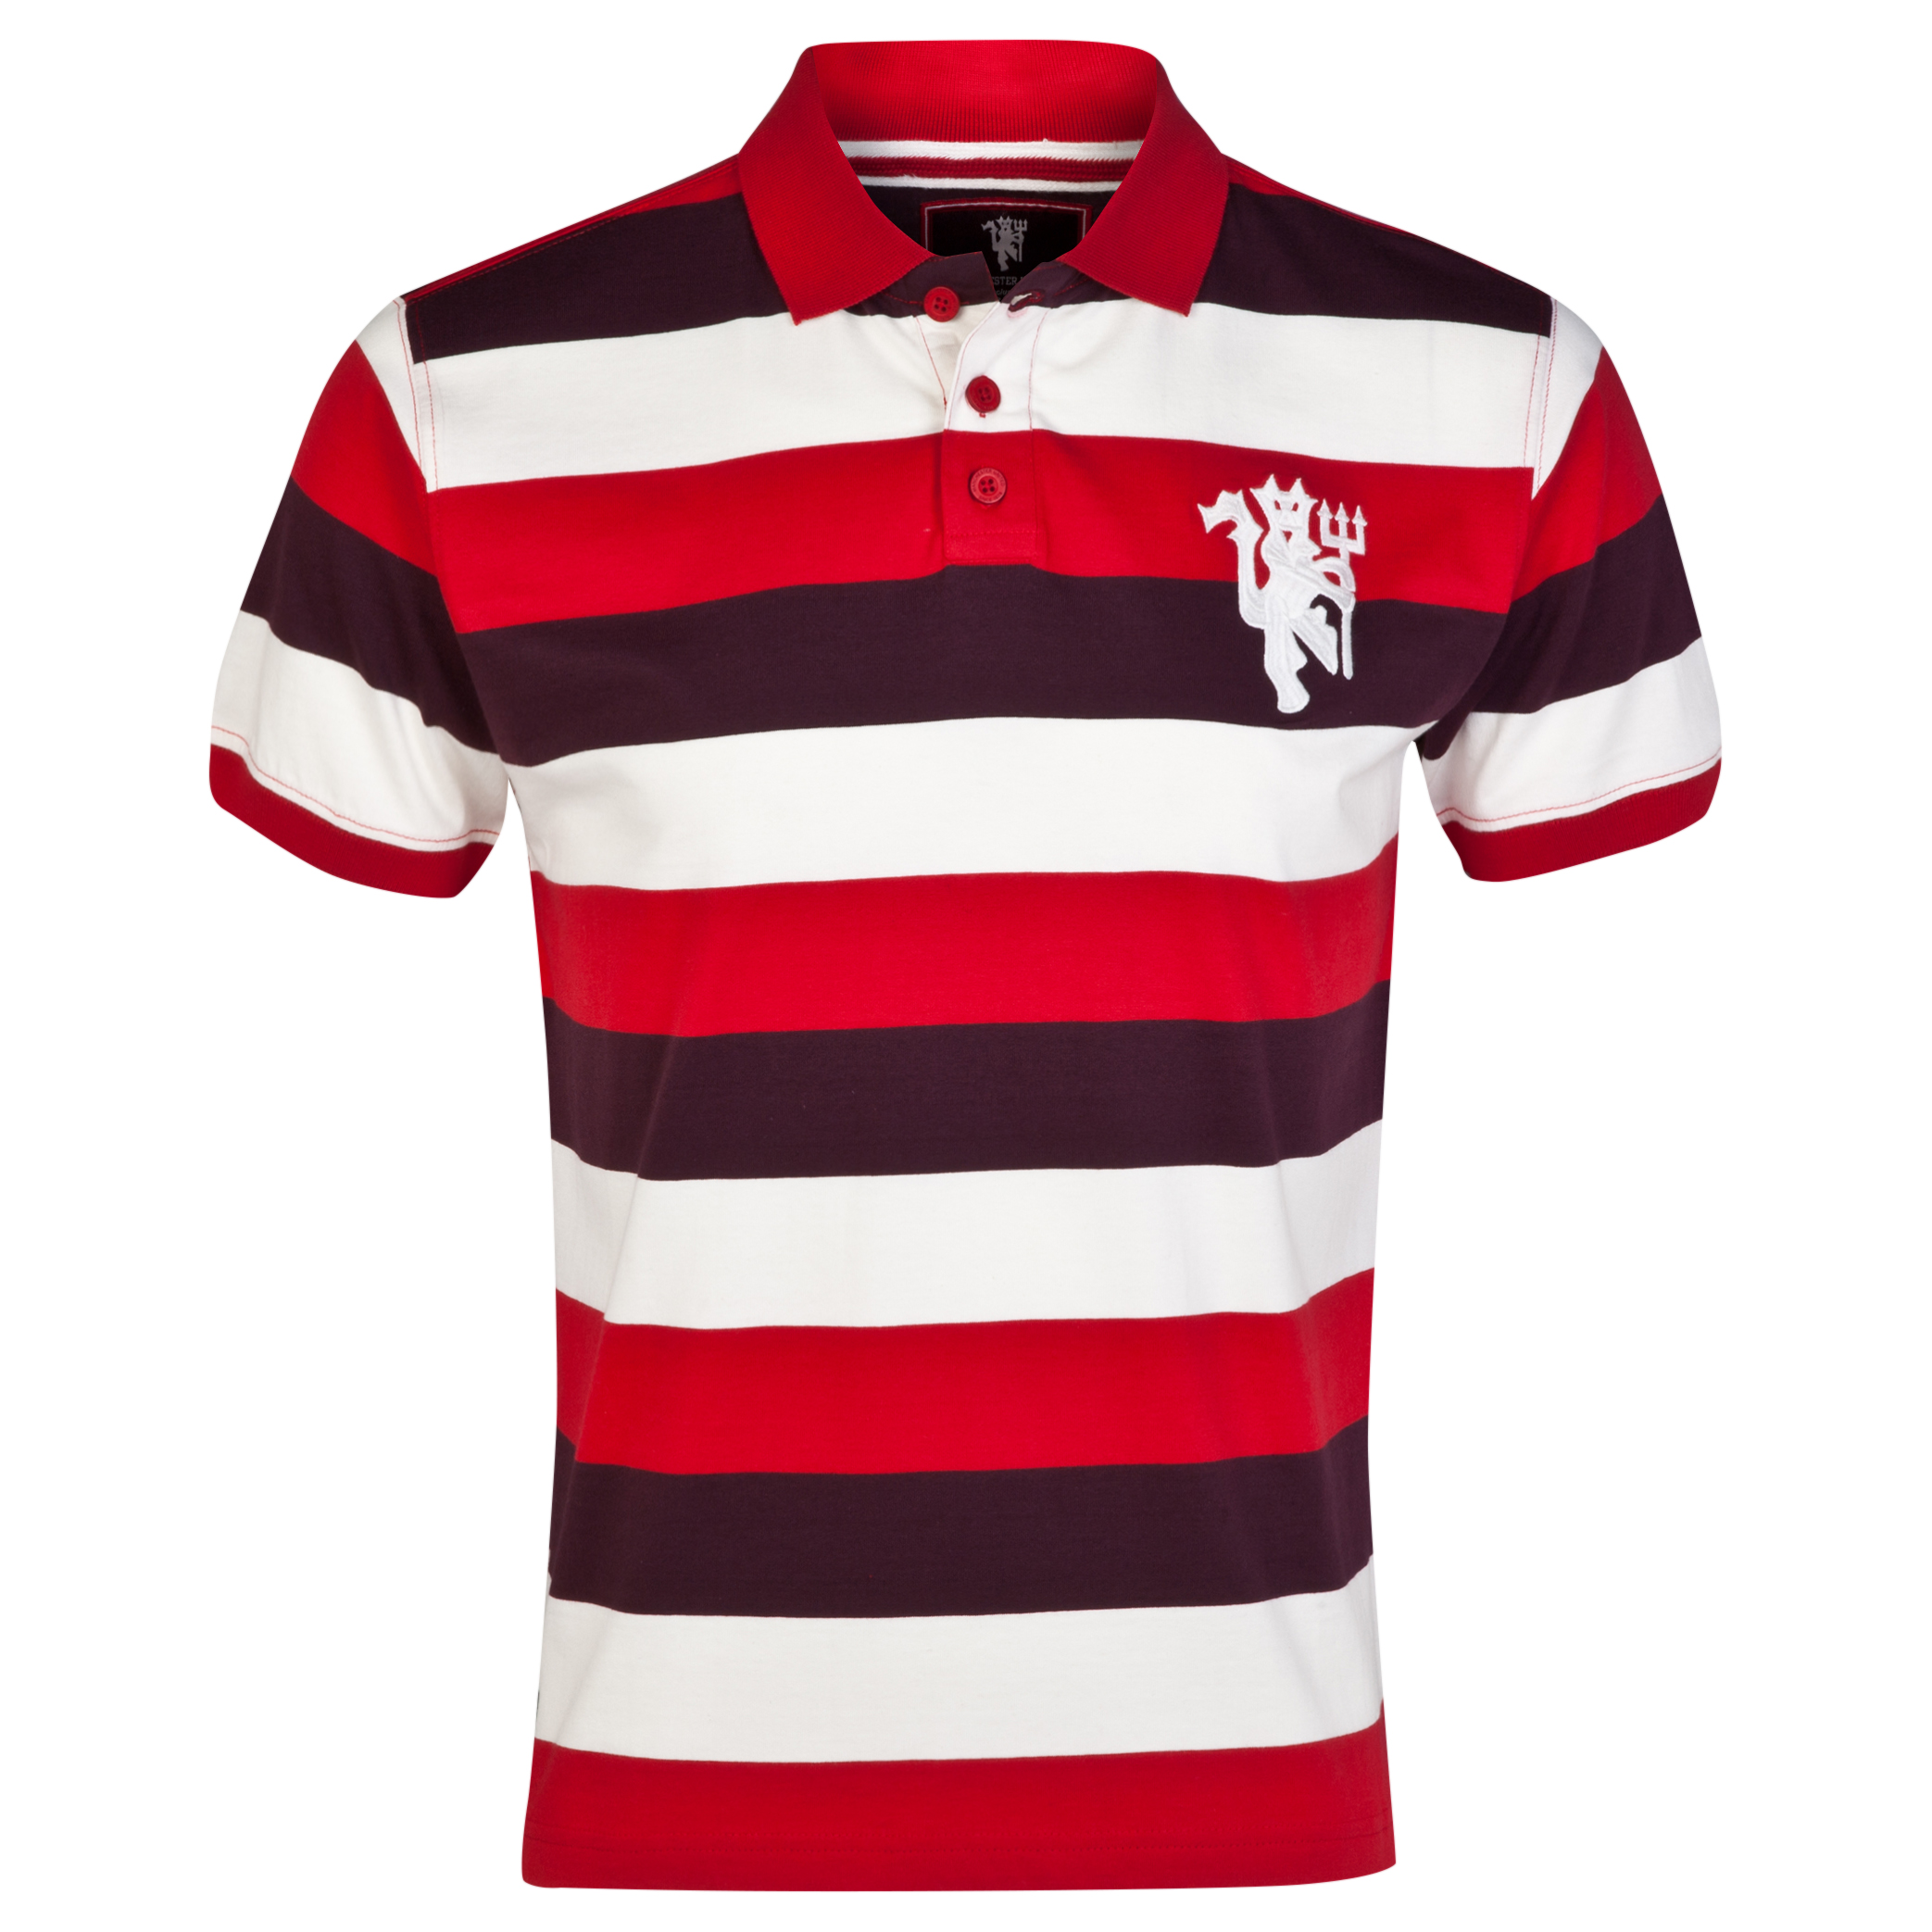 Manchester United Heritage Striped Polo Shirt - Vintage Claret - Mens